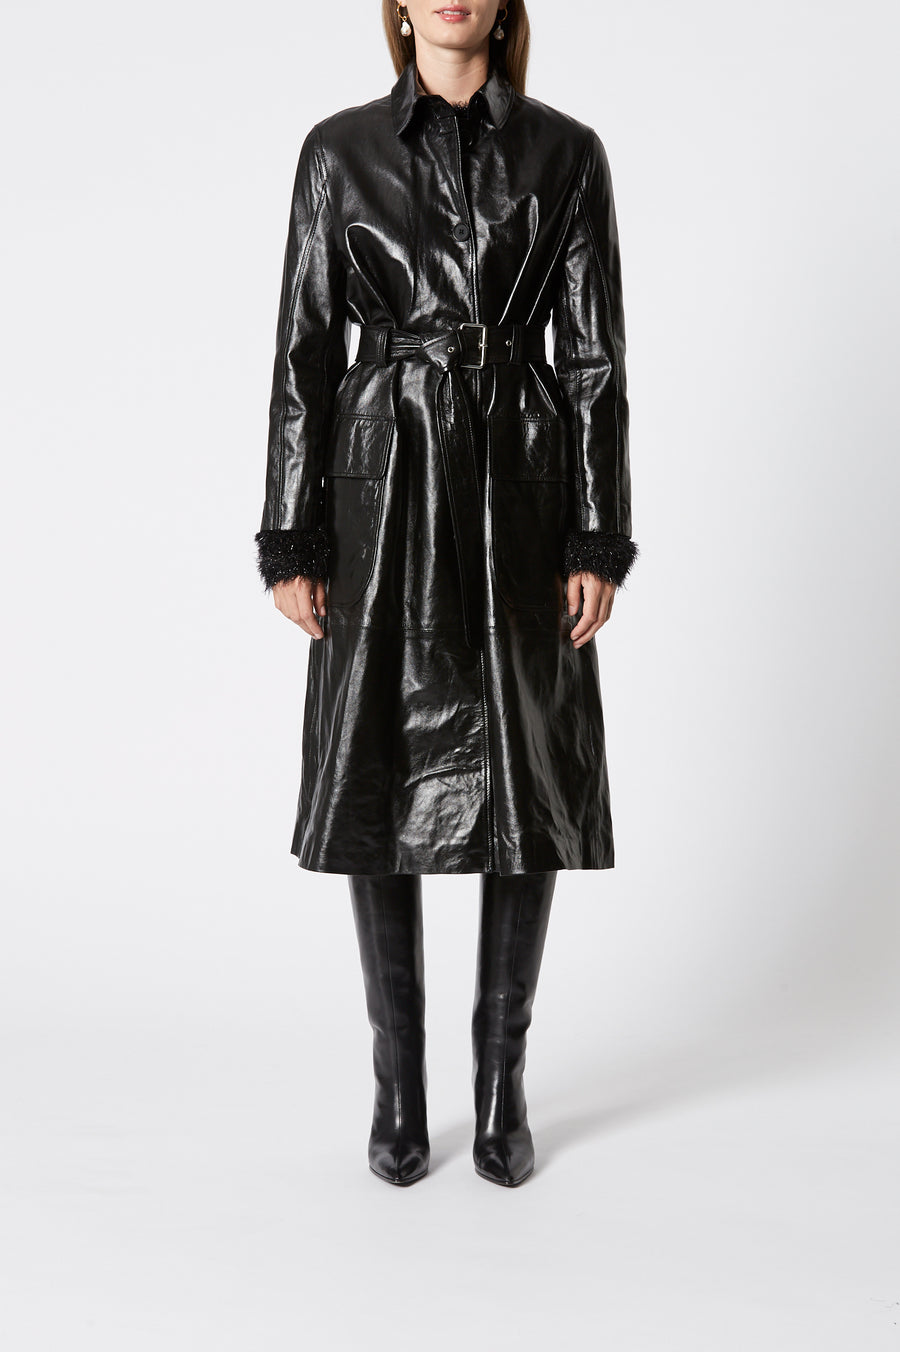 Leather Trench, 100% leather, loose fit, comes with belt, has a collar, long sleeves, button fastenings through front, Color Black